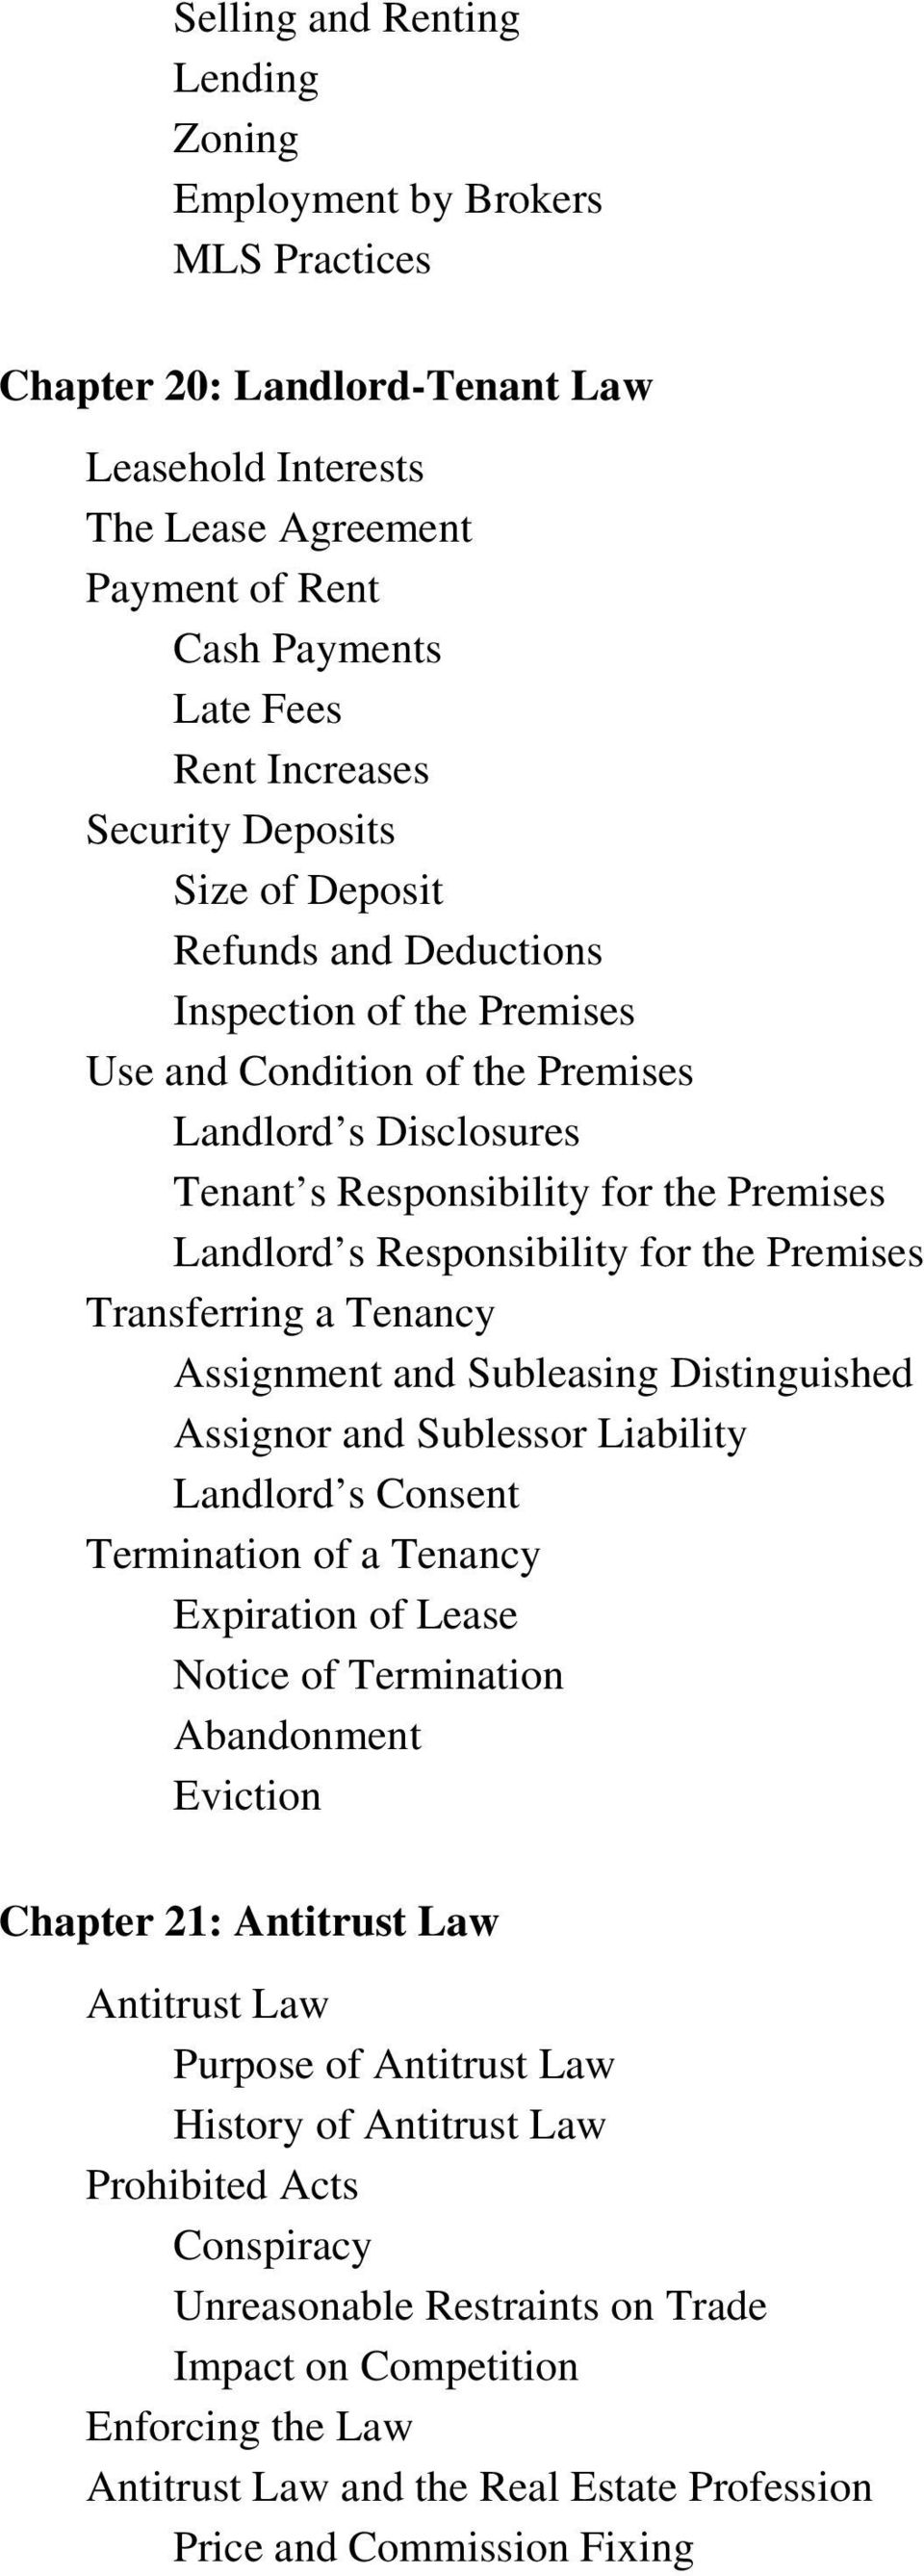 Responsibility for the Premises Transferring a Tenancy Assignment and Subleasing Distinguished Assignor and Sublessor Liability Landlord s Consent Termination of a Tenancy Expiration of Lease Notice